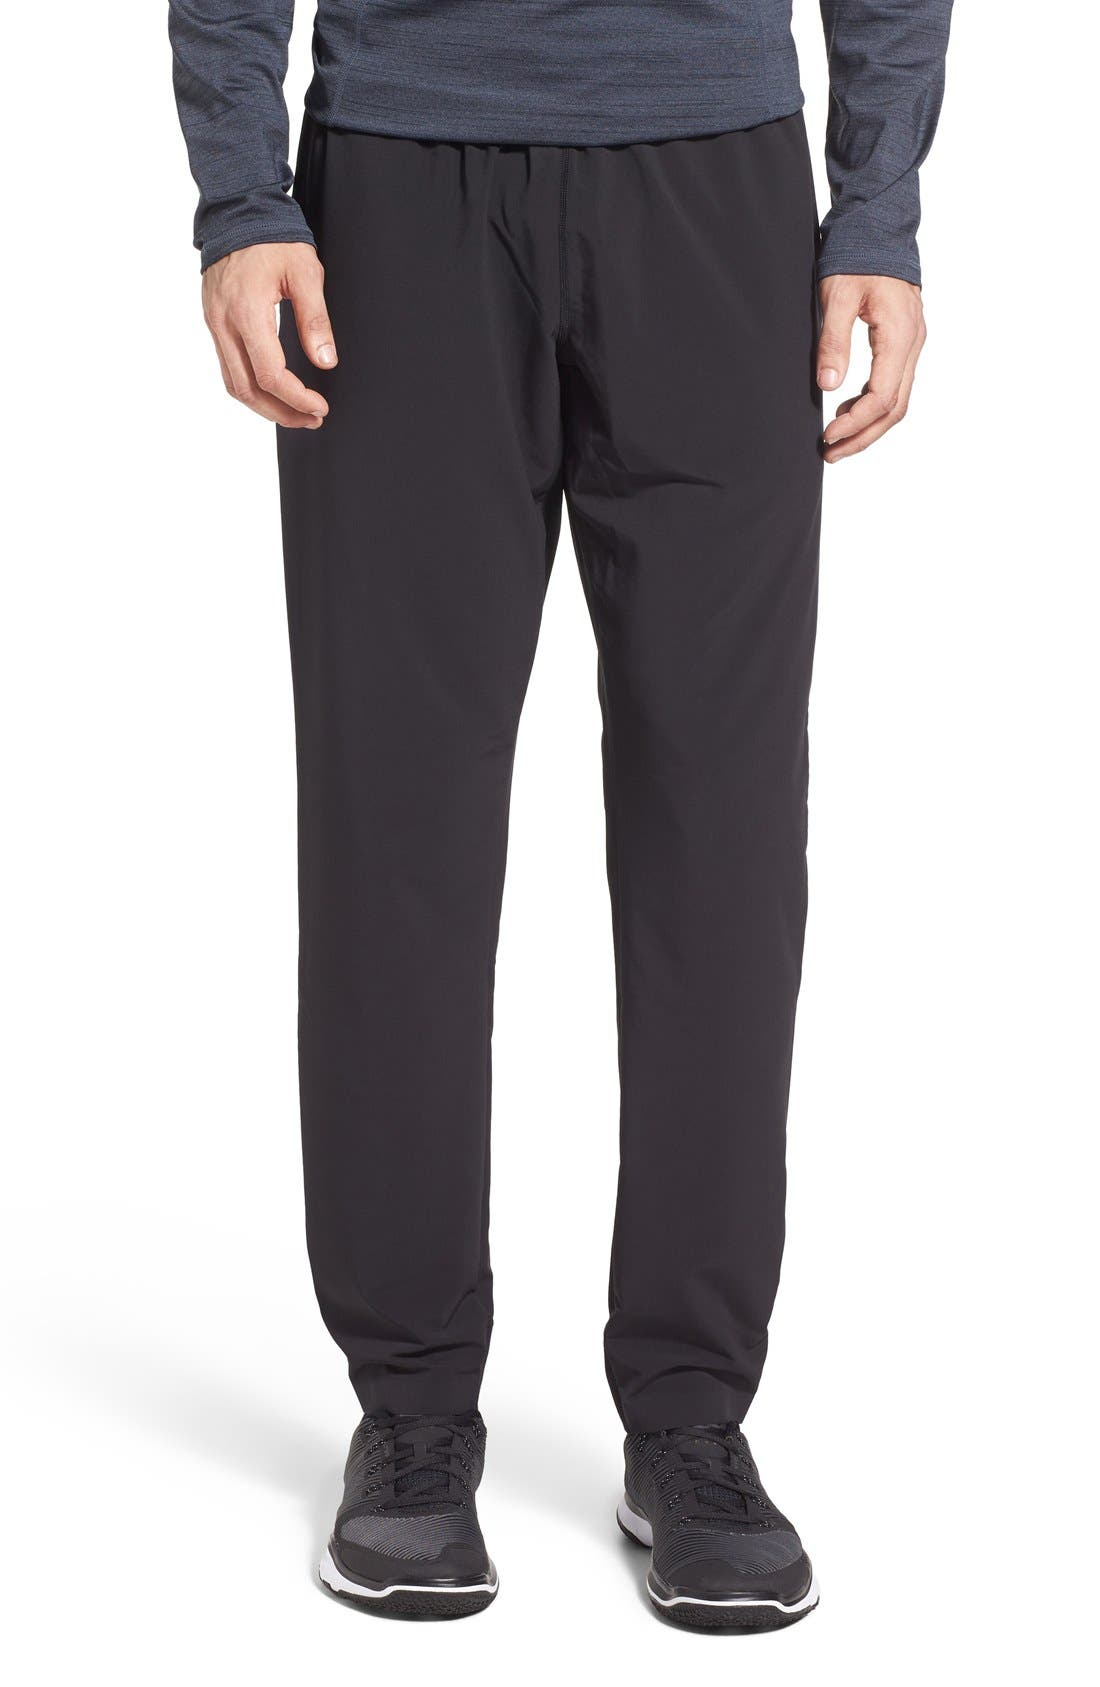 Graphite Tapered Athletic Pants,                         Main,                         color, 001